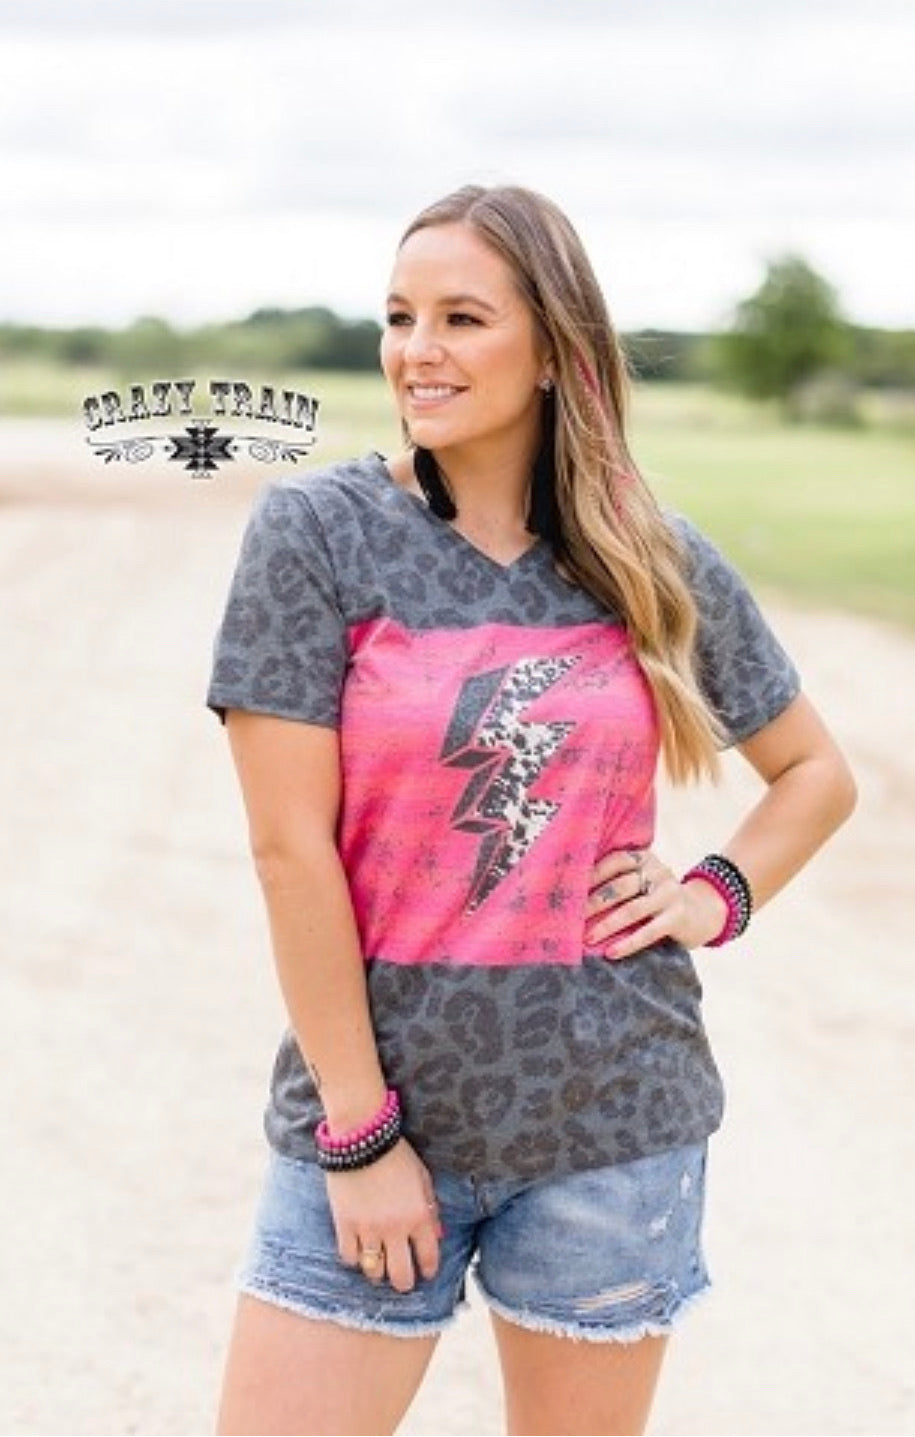 Thunder down under leopard top